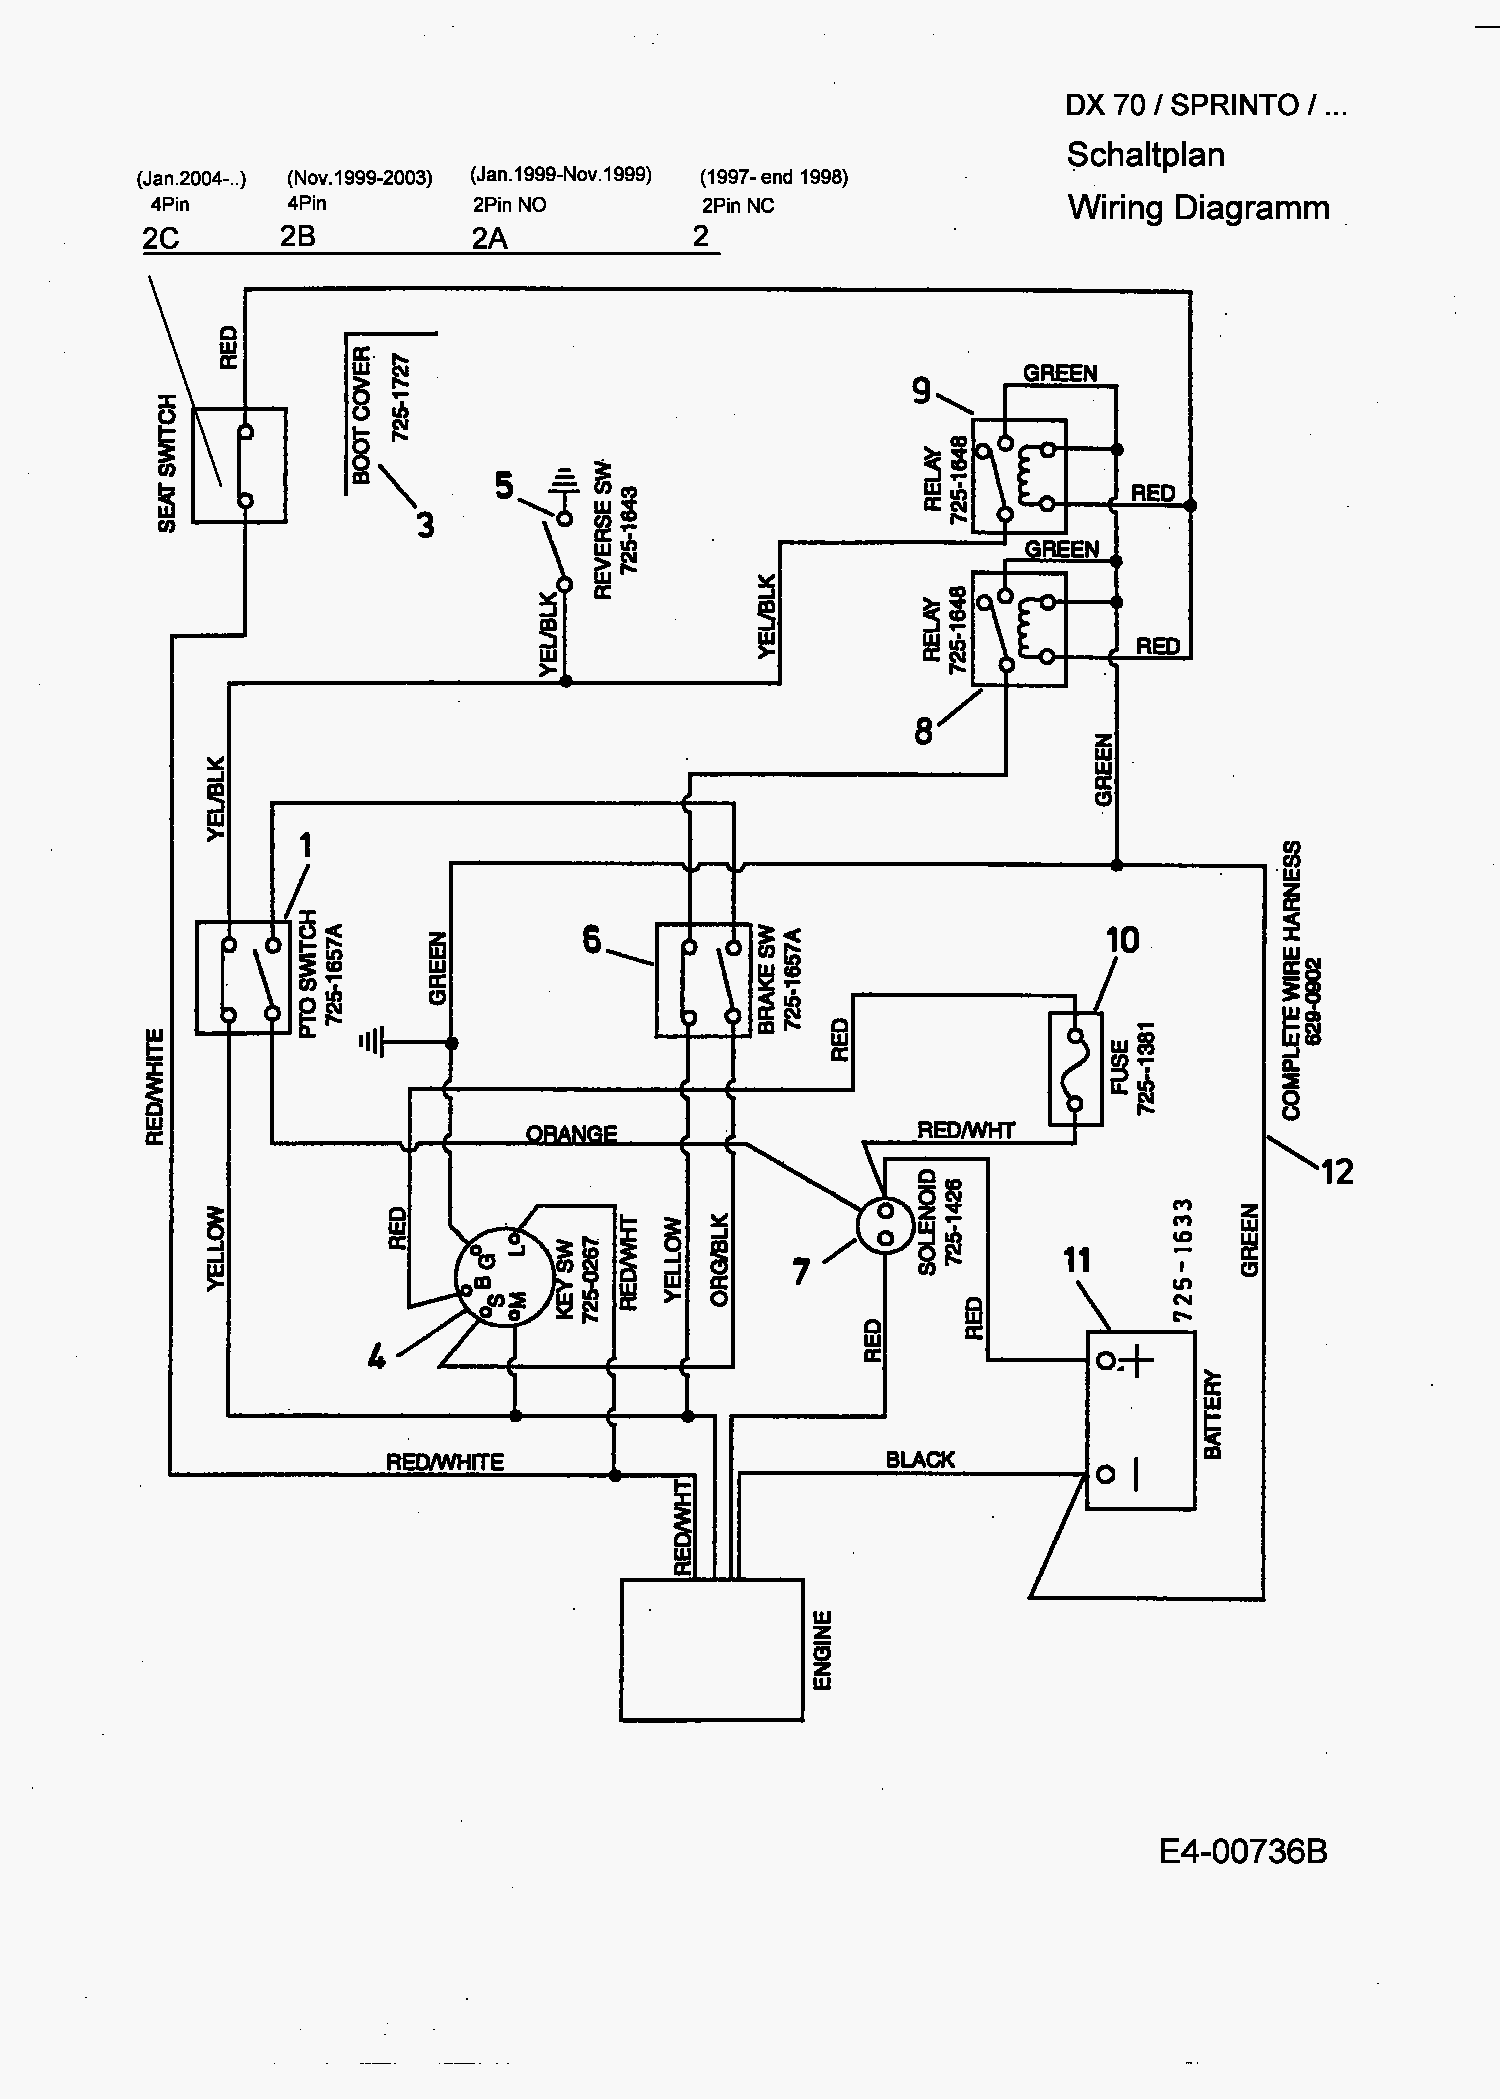 mtd solenoid wiring diagram tekonsha prodigy rf for yard machine get free image about